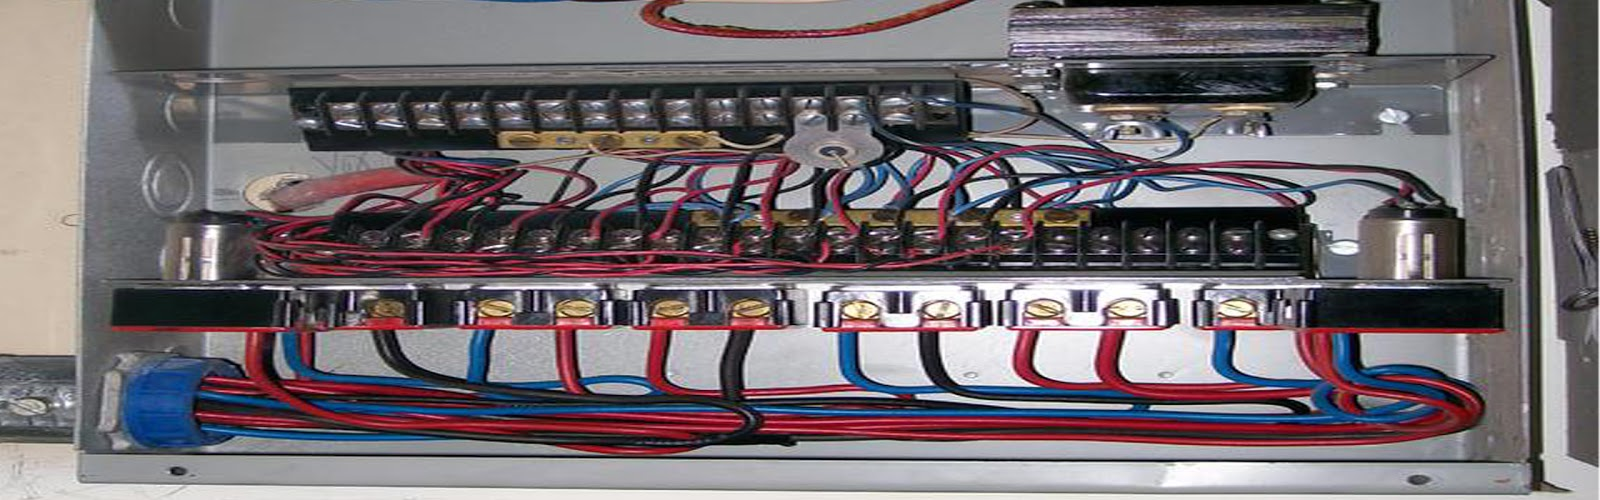 offering conventional electrical services such as adding circuits and trouble shooting as well as less conventional services including low voltage wiring  [ 1600 x 500 Pixel ]